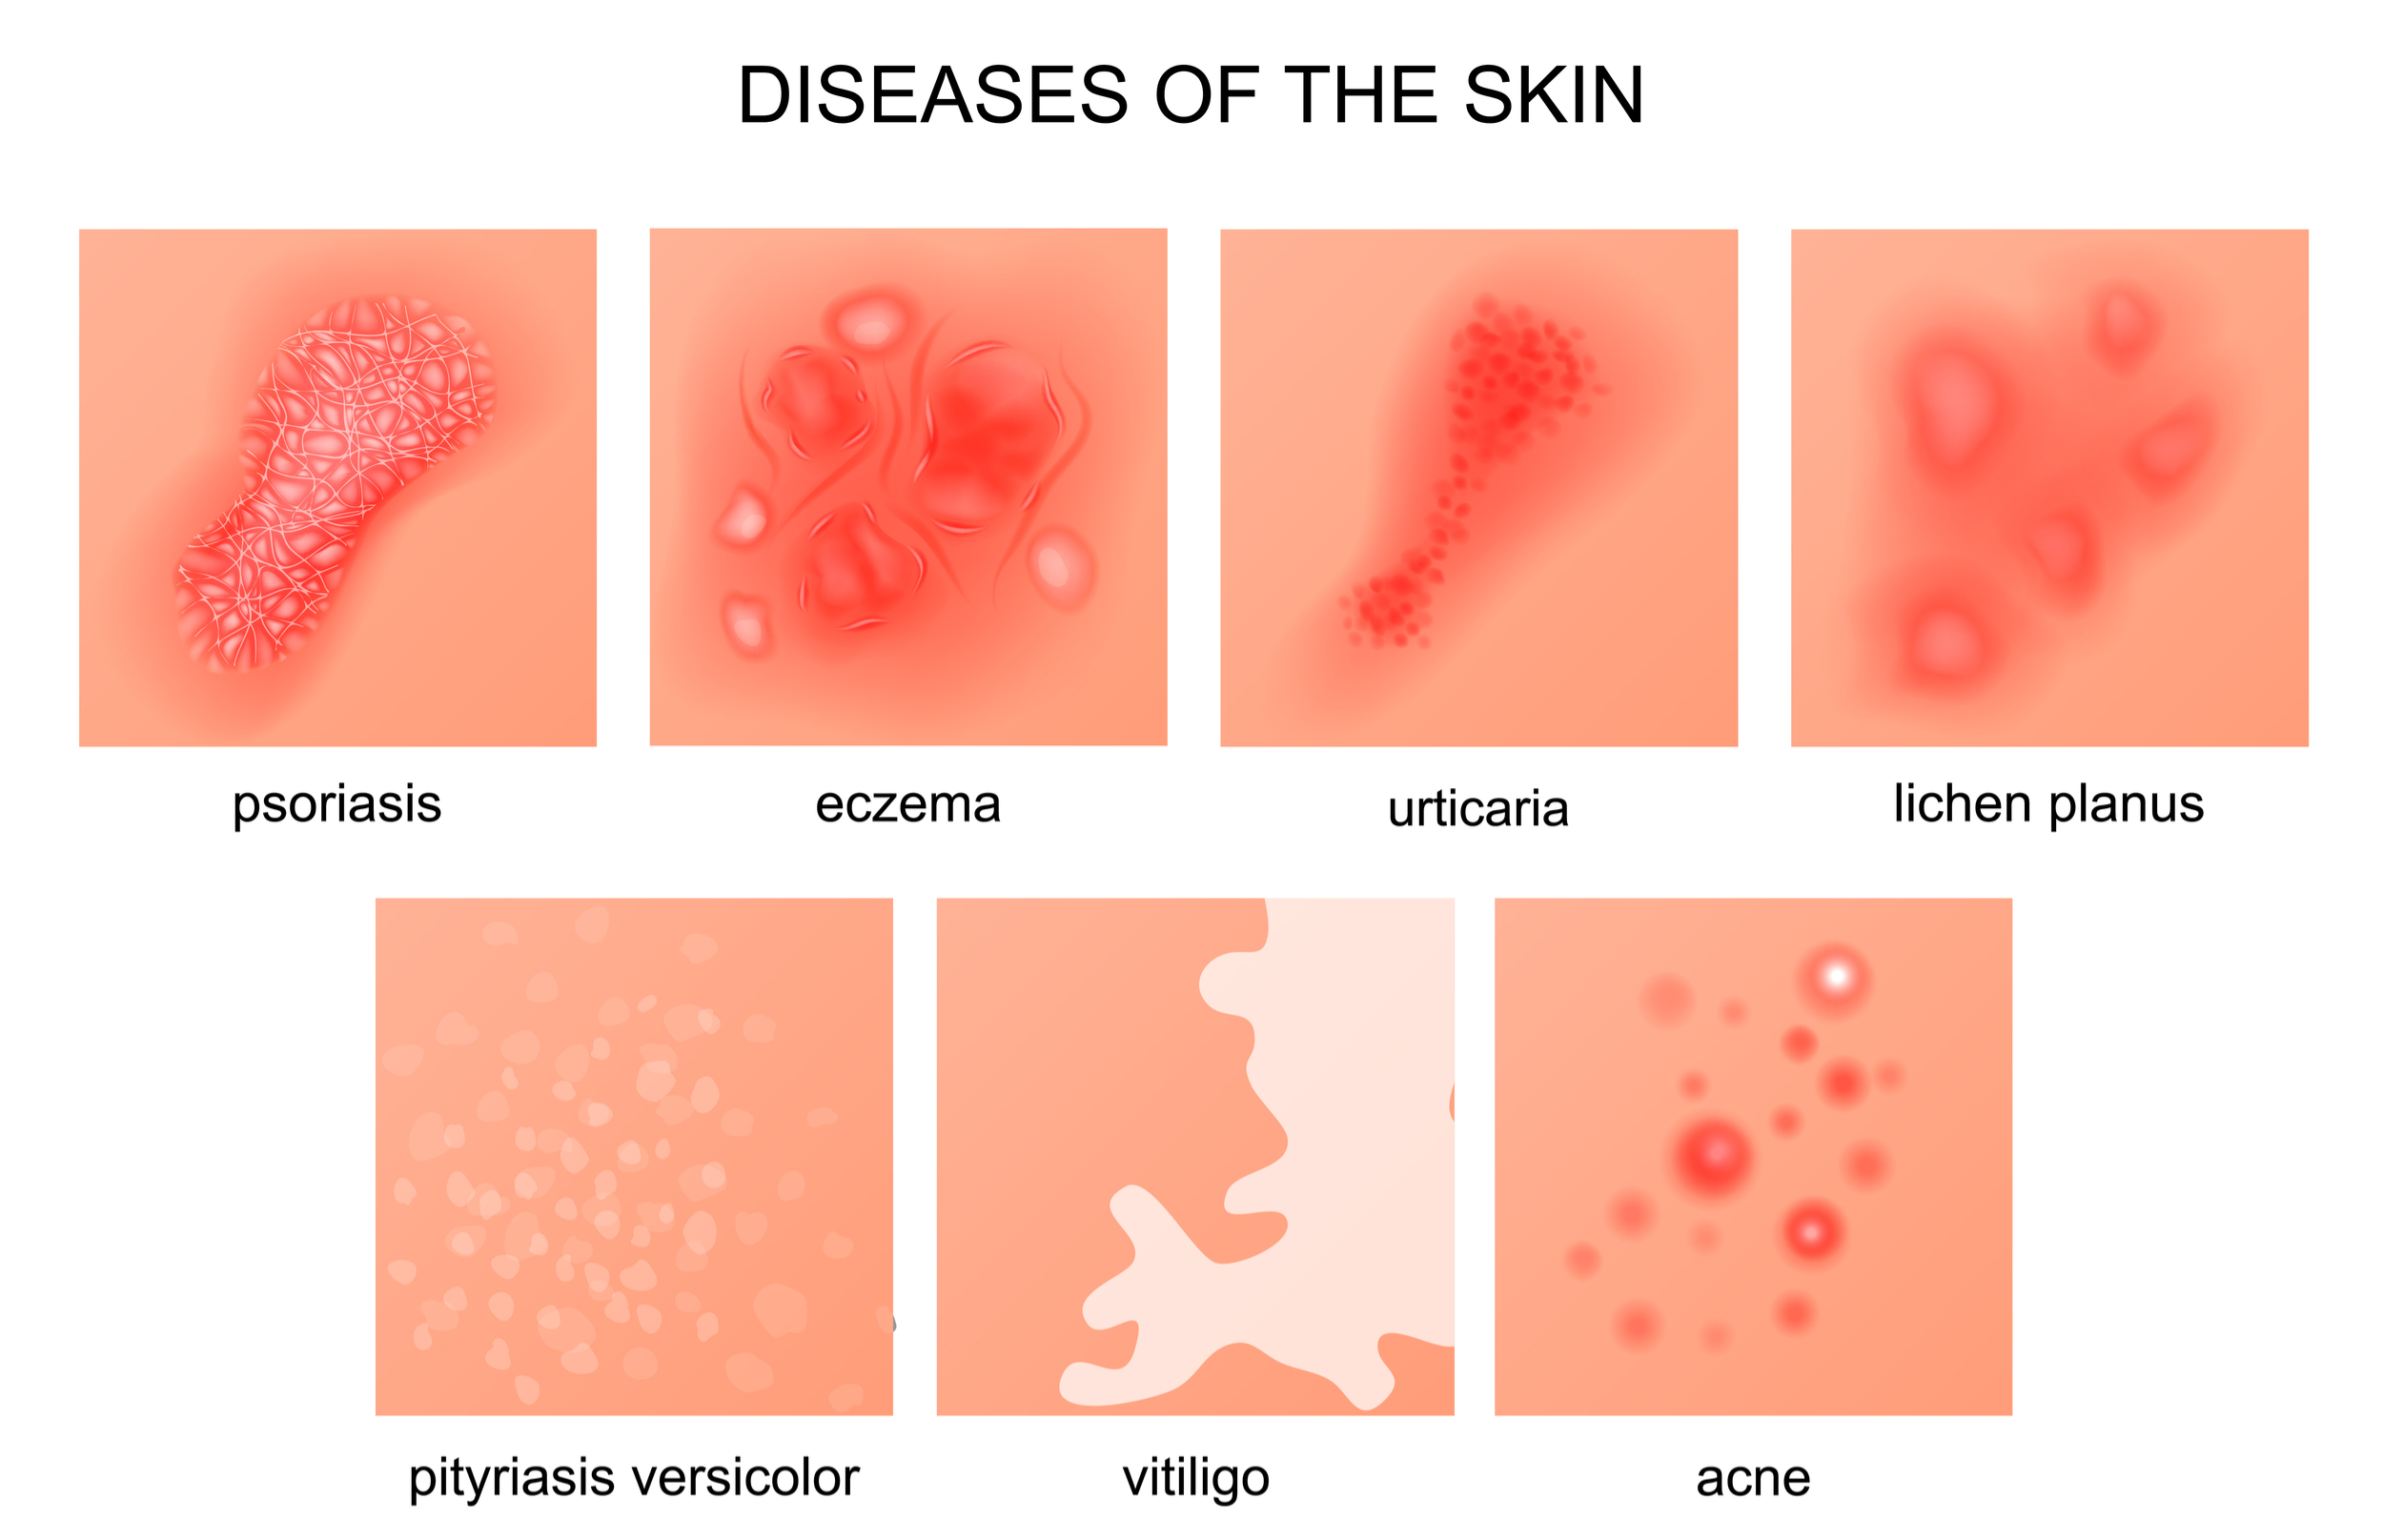 skin diseases images for presentations infectious disease images